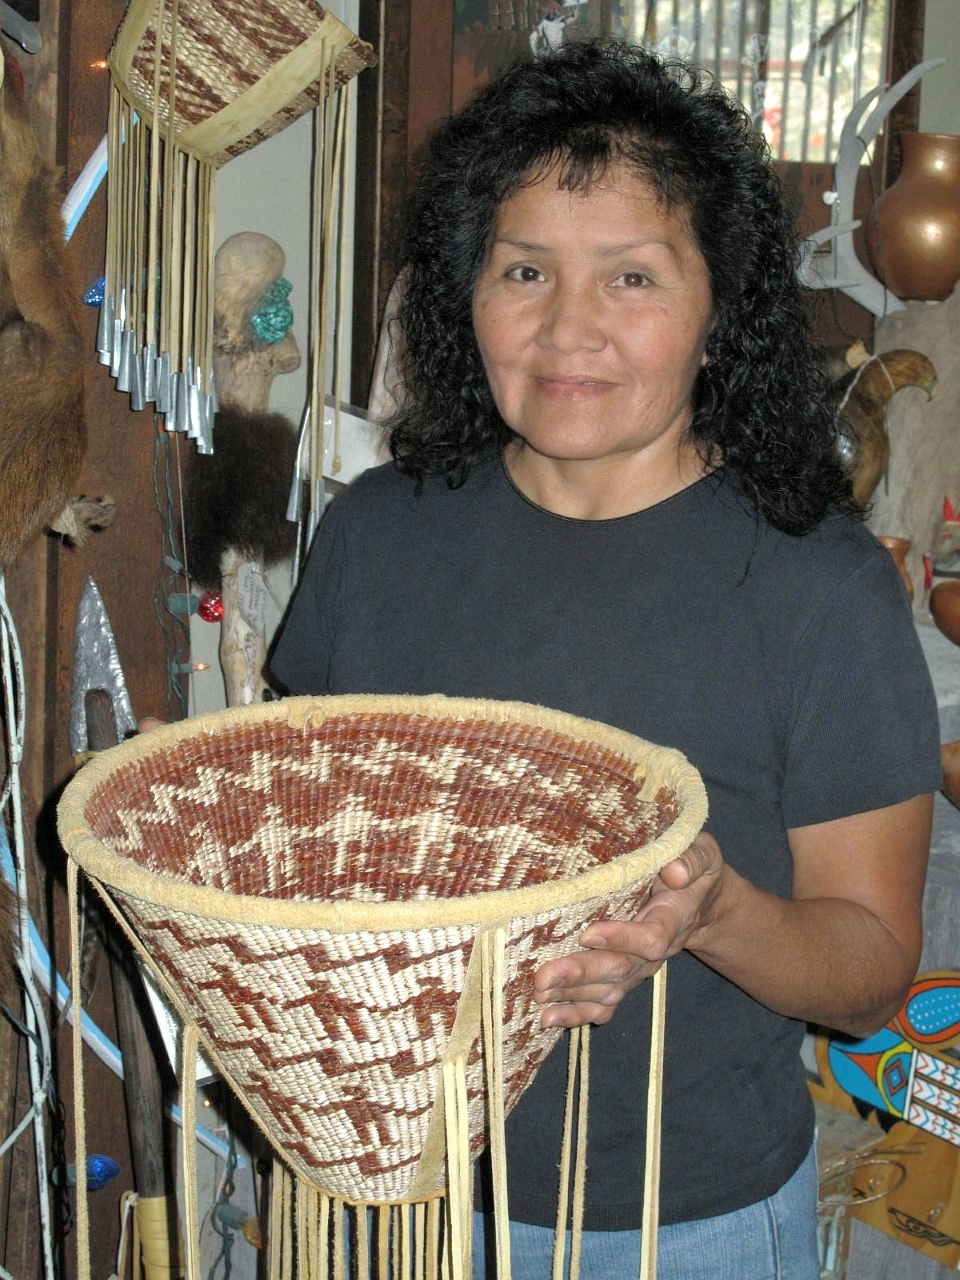 Mary Jane Dudley with burden basket